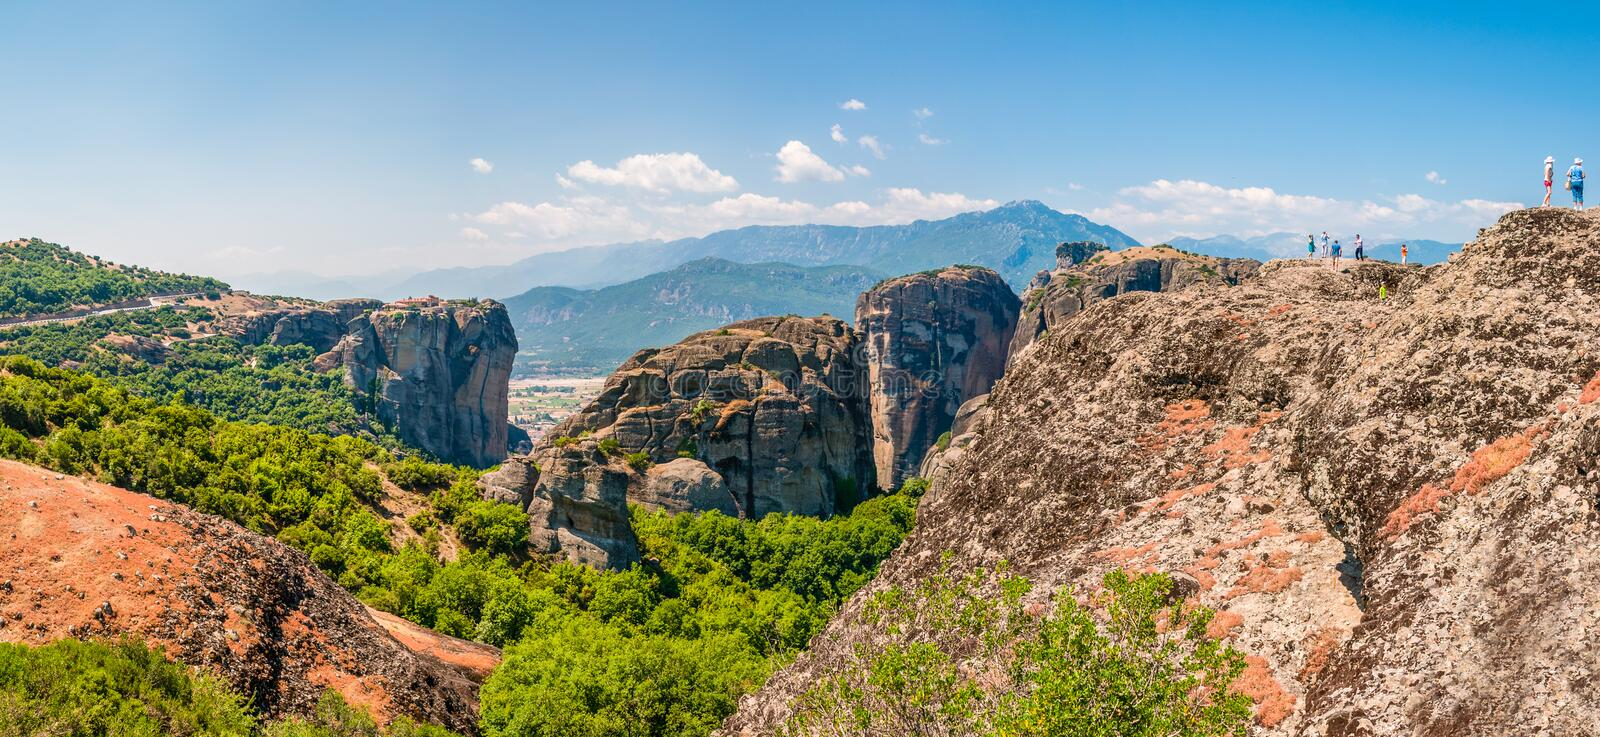 Panoramic view on scenic Meteora landscape rock formations with monasteries on one of the cliffs and traveling people on another. royalty free stock images